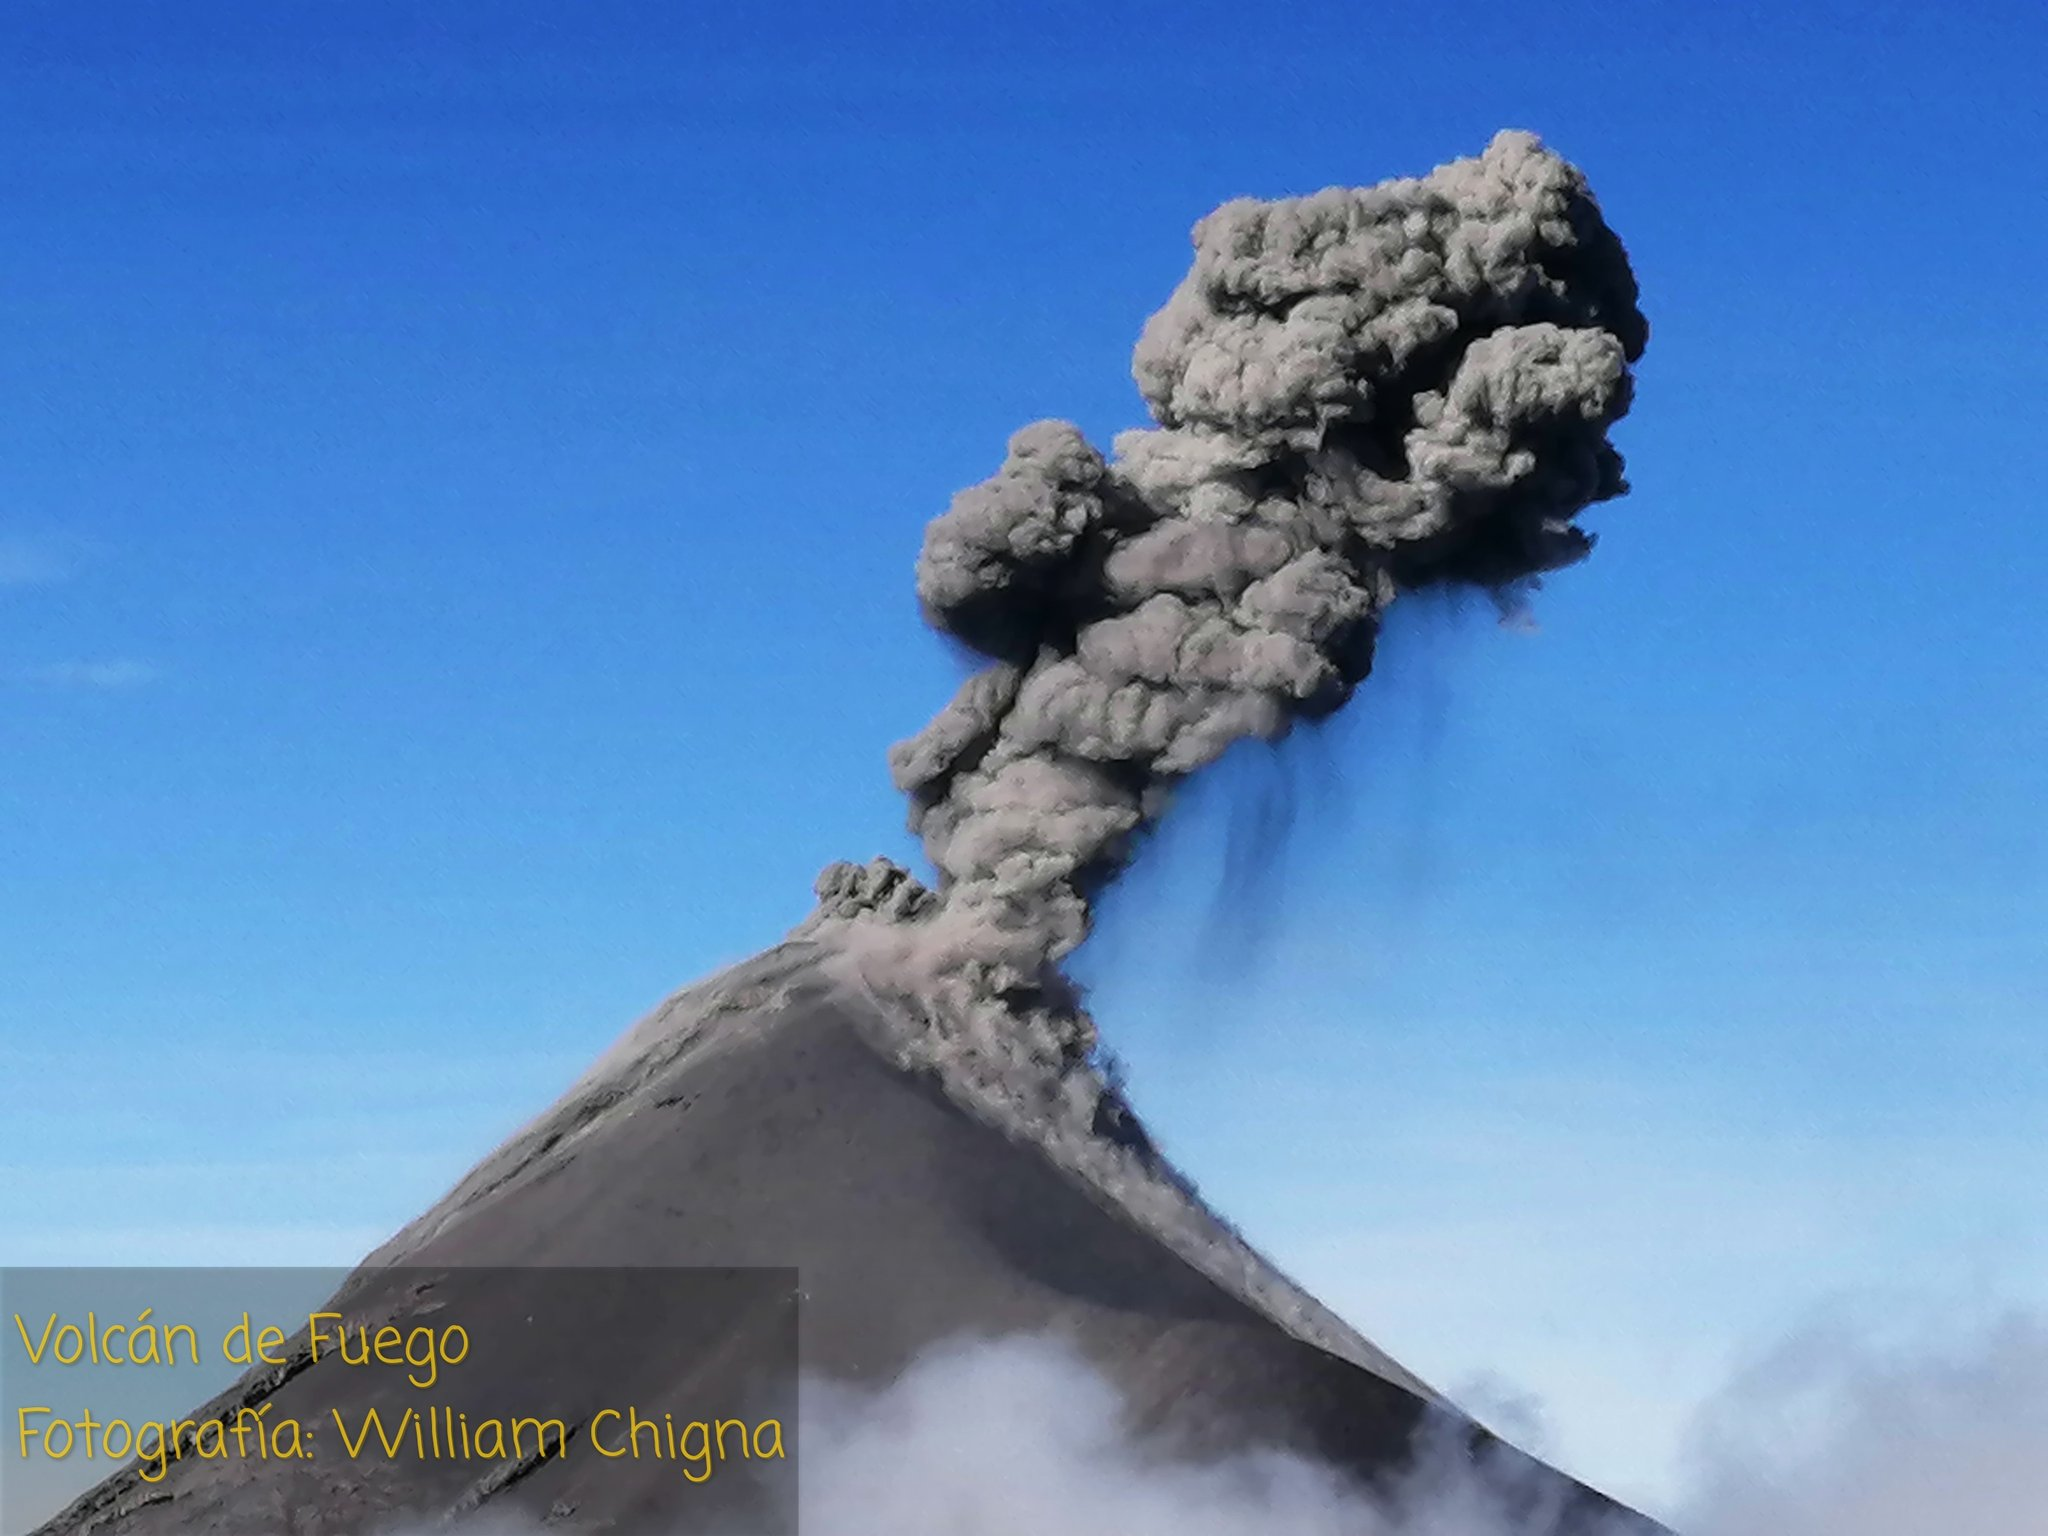 Pyroclastic material (so-called tephra) erupted from Fuego volcano on 17 July (image: @William_Chigna/twitter)